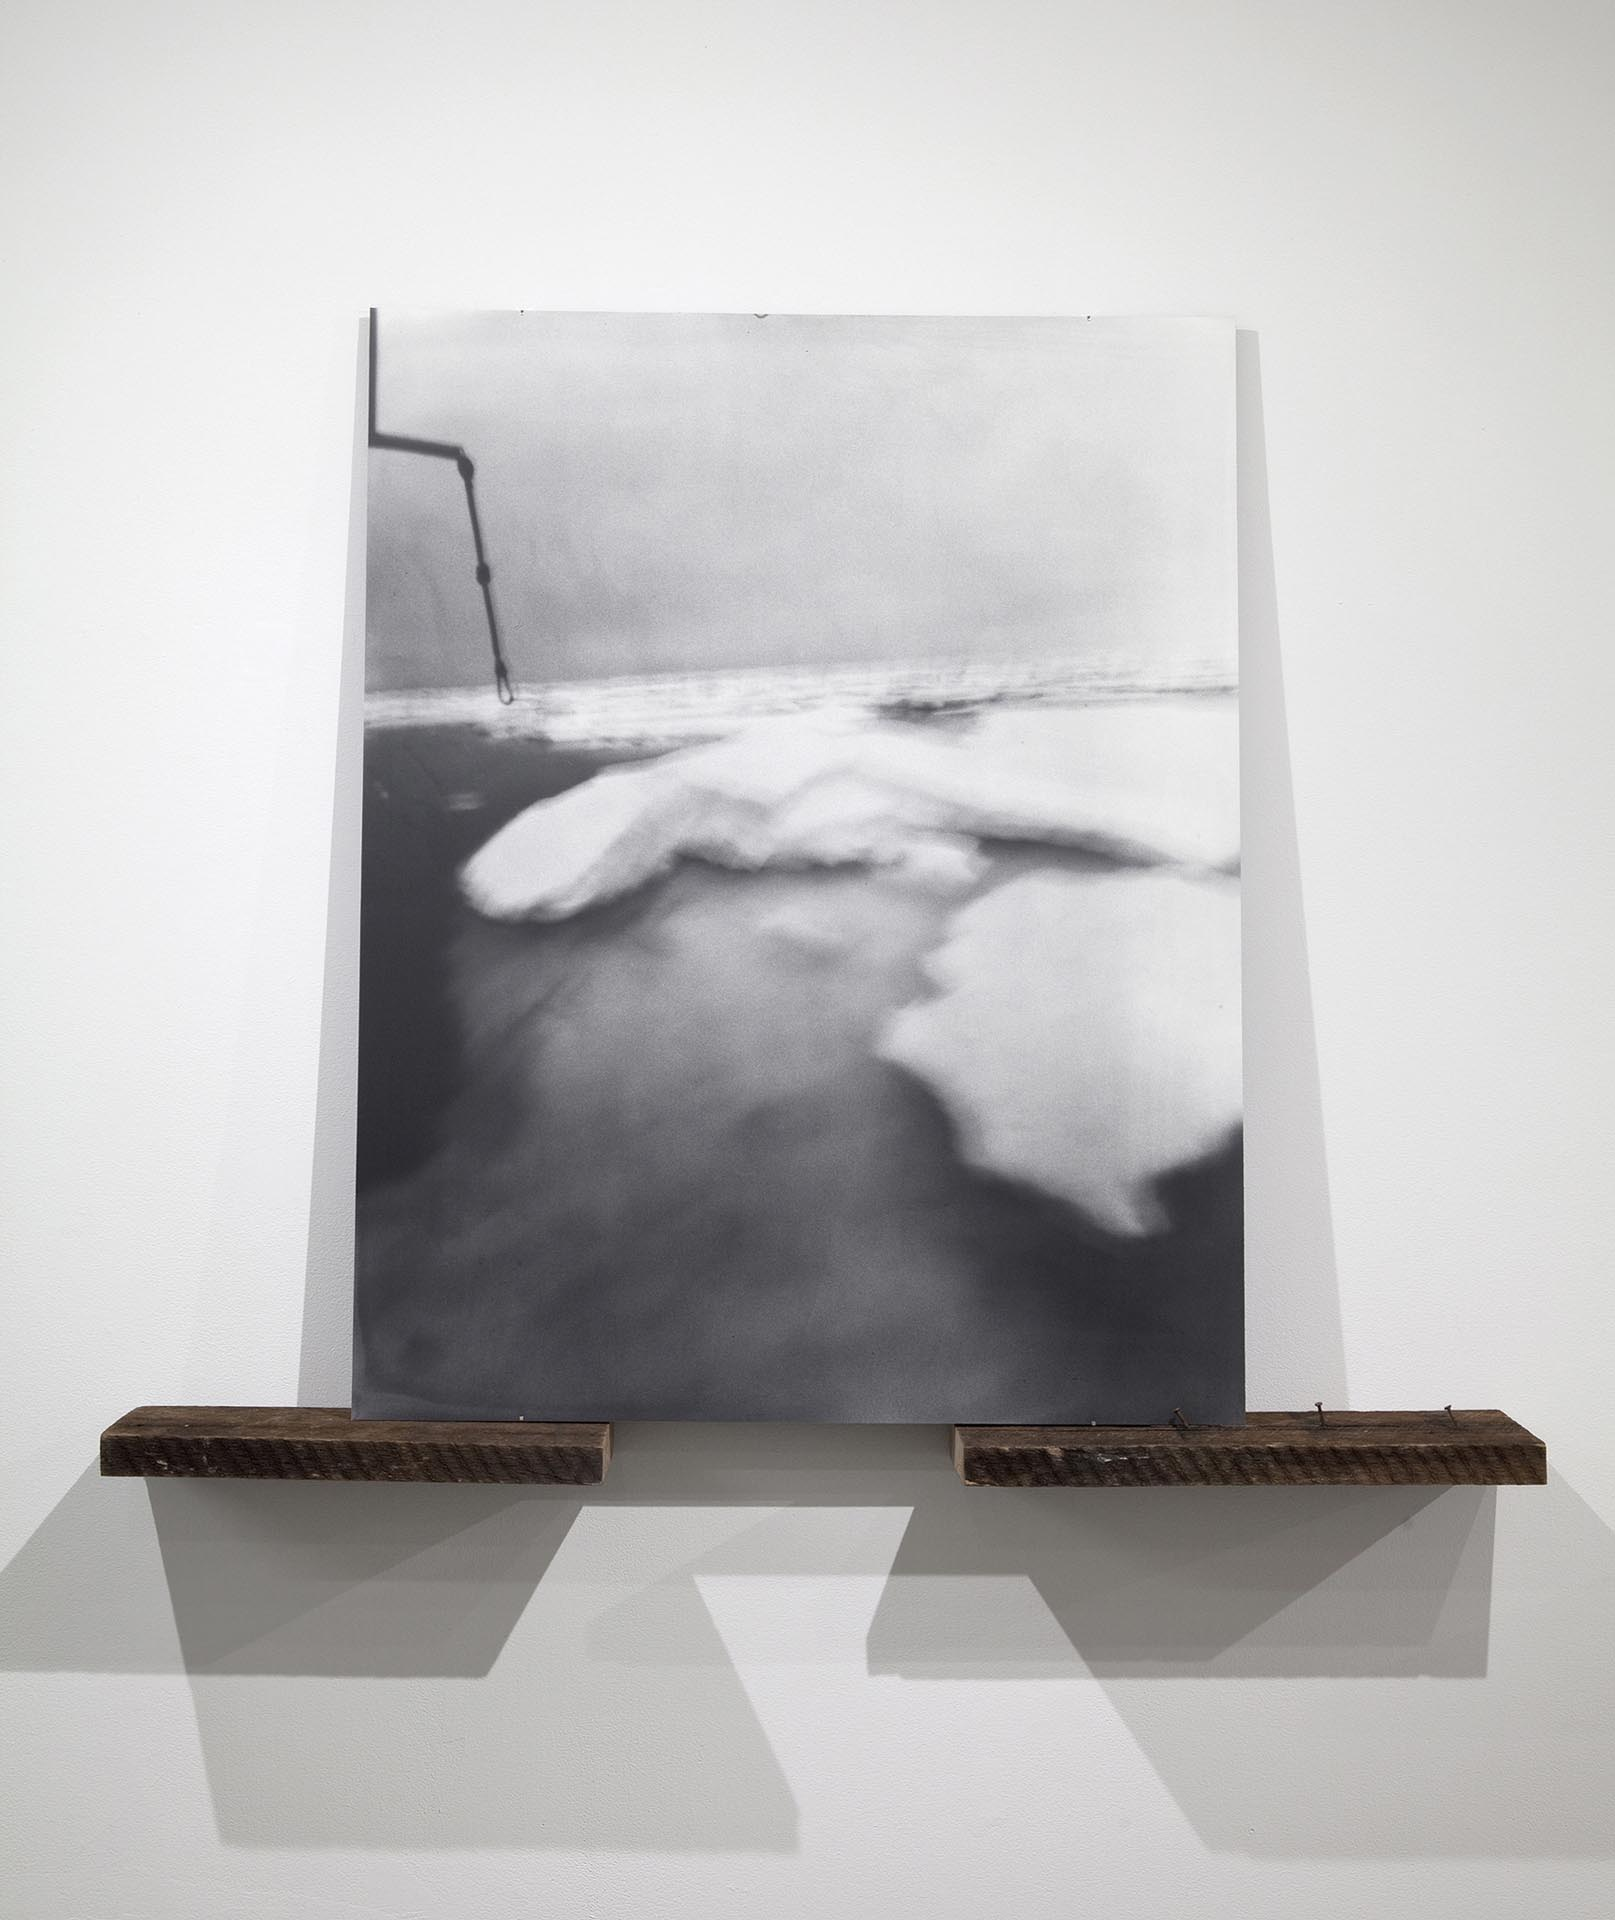 Vanessa Albury, Arctic, Future Relics (Ice Floes), 2016, Selenium-toned Gelatin Silver Print mounted to museum board and wood, 44